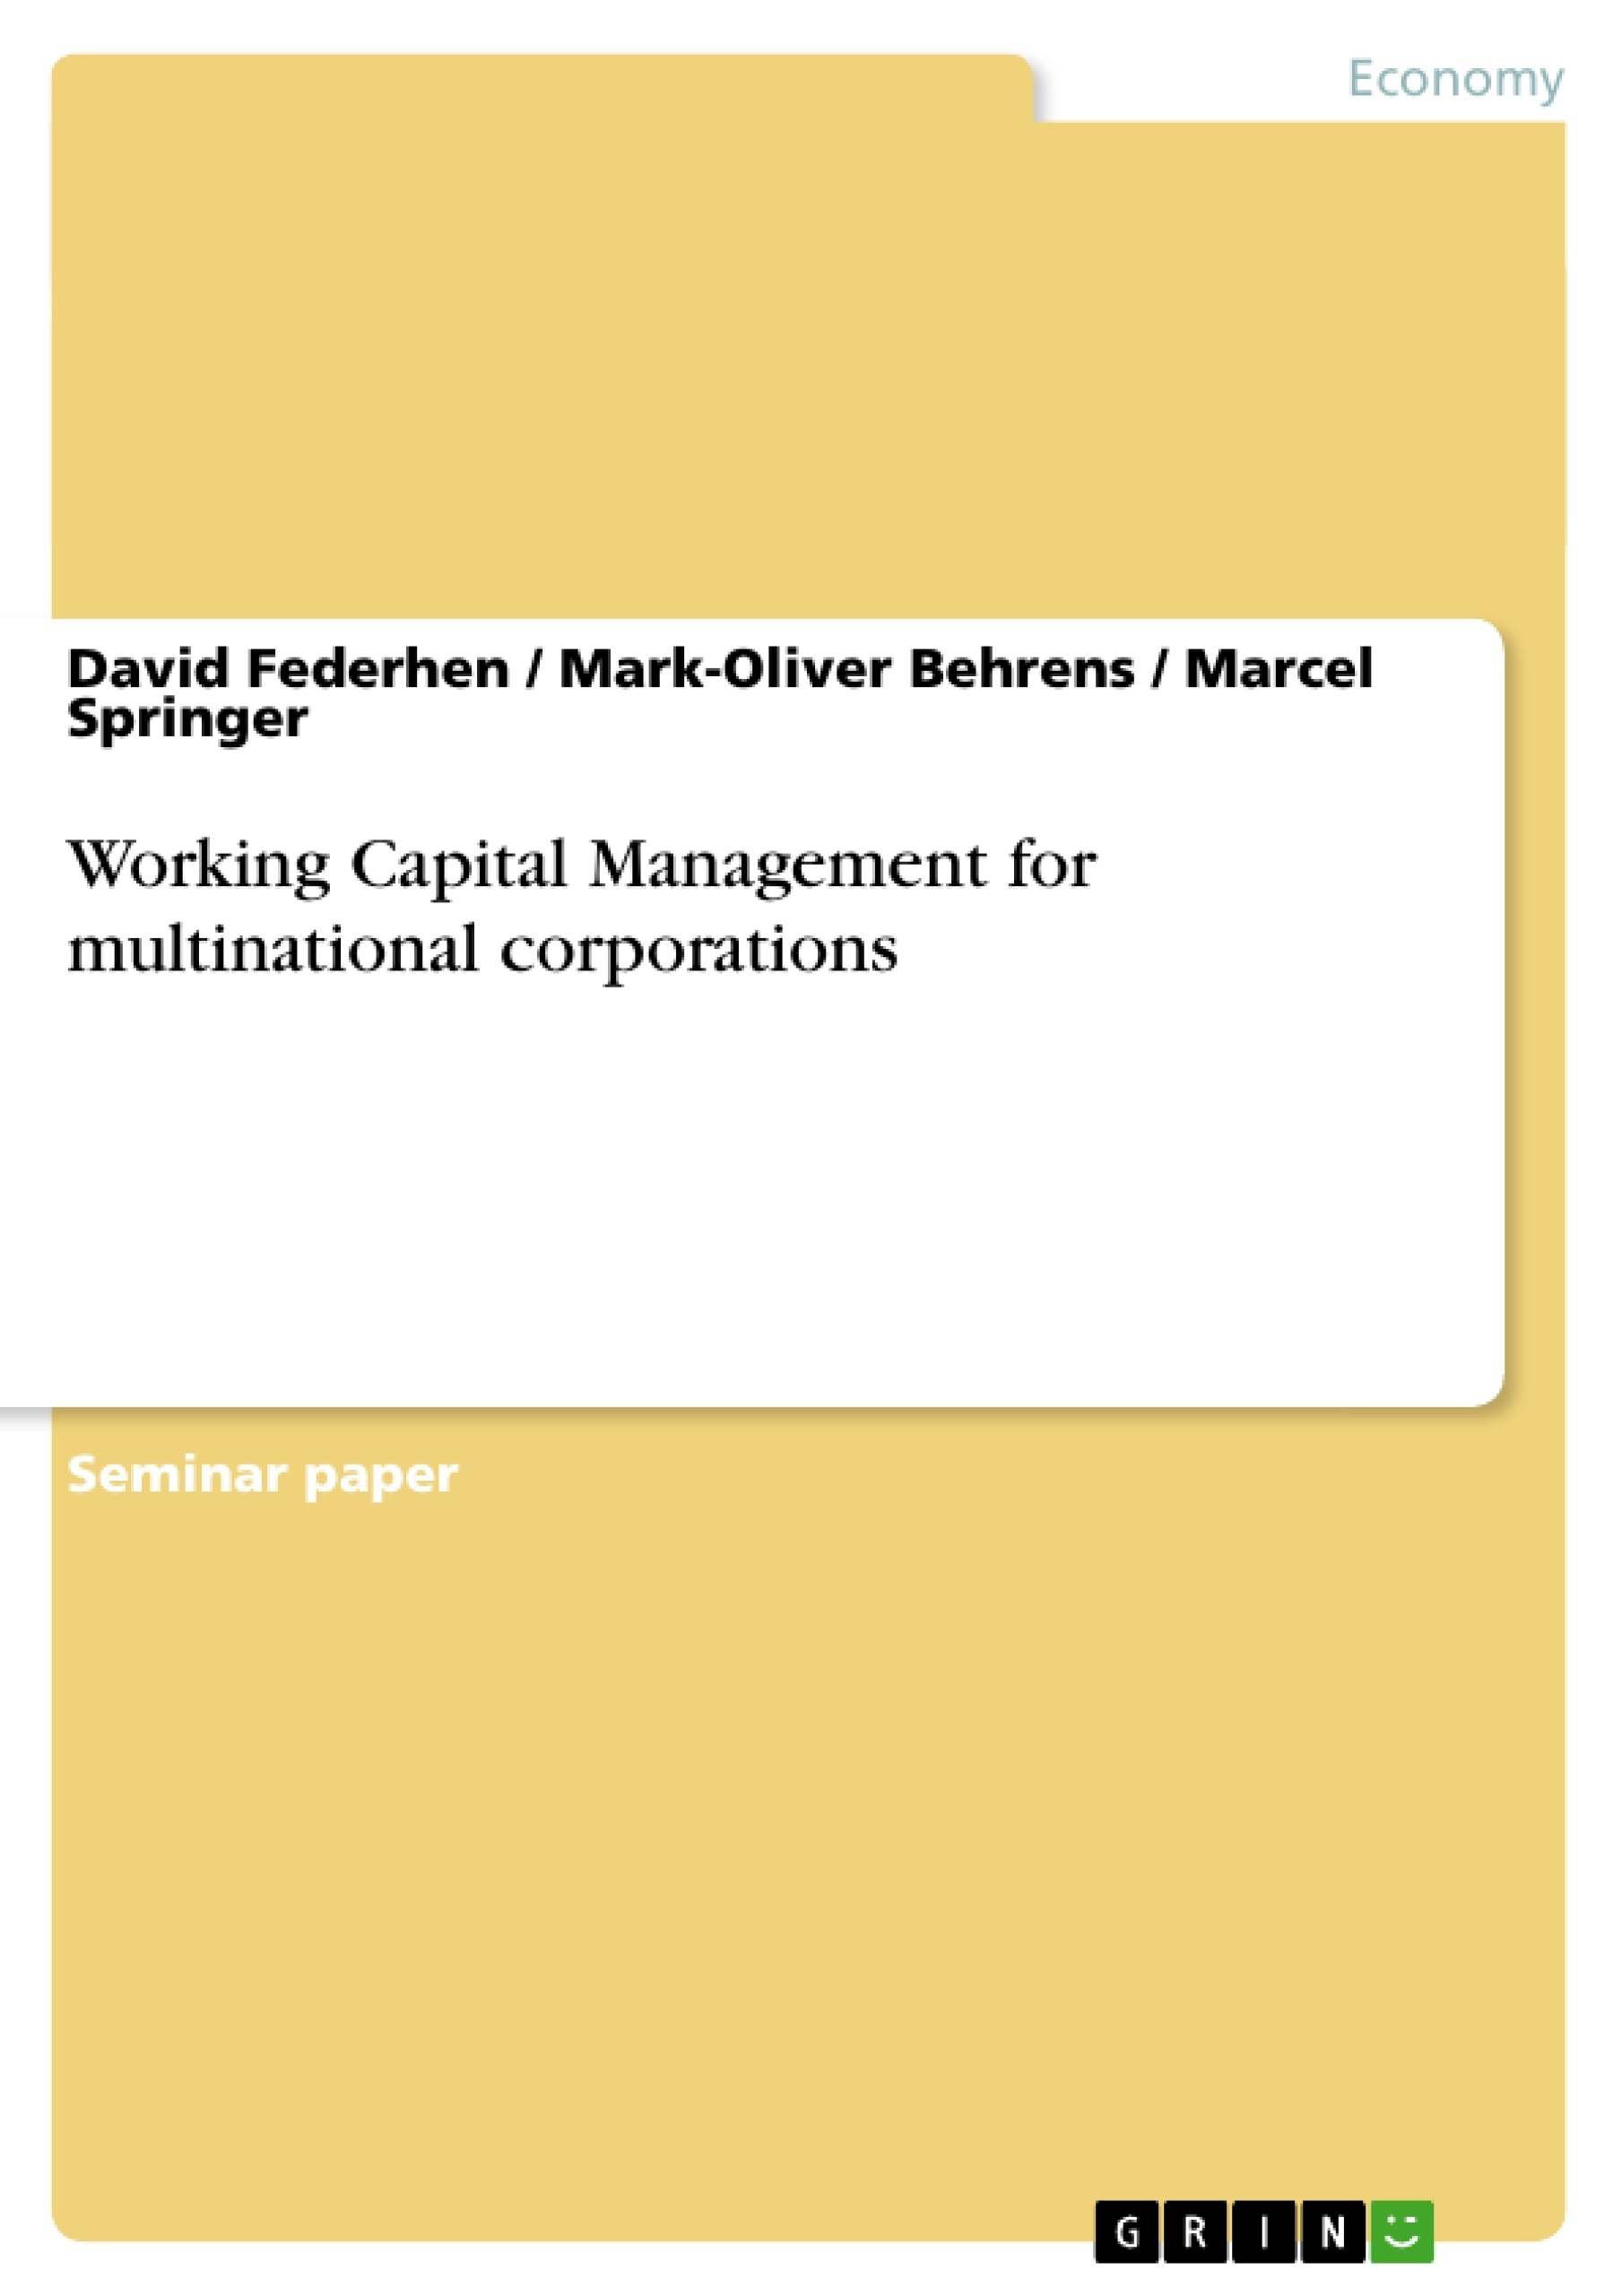 Title: Working Capital Management for multinational corporations